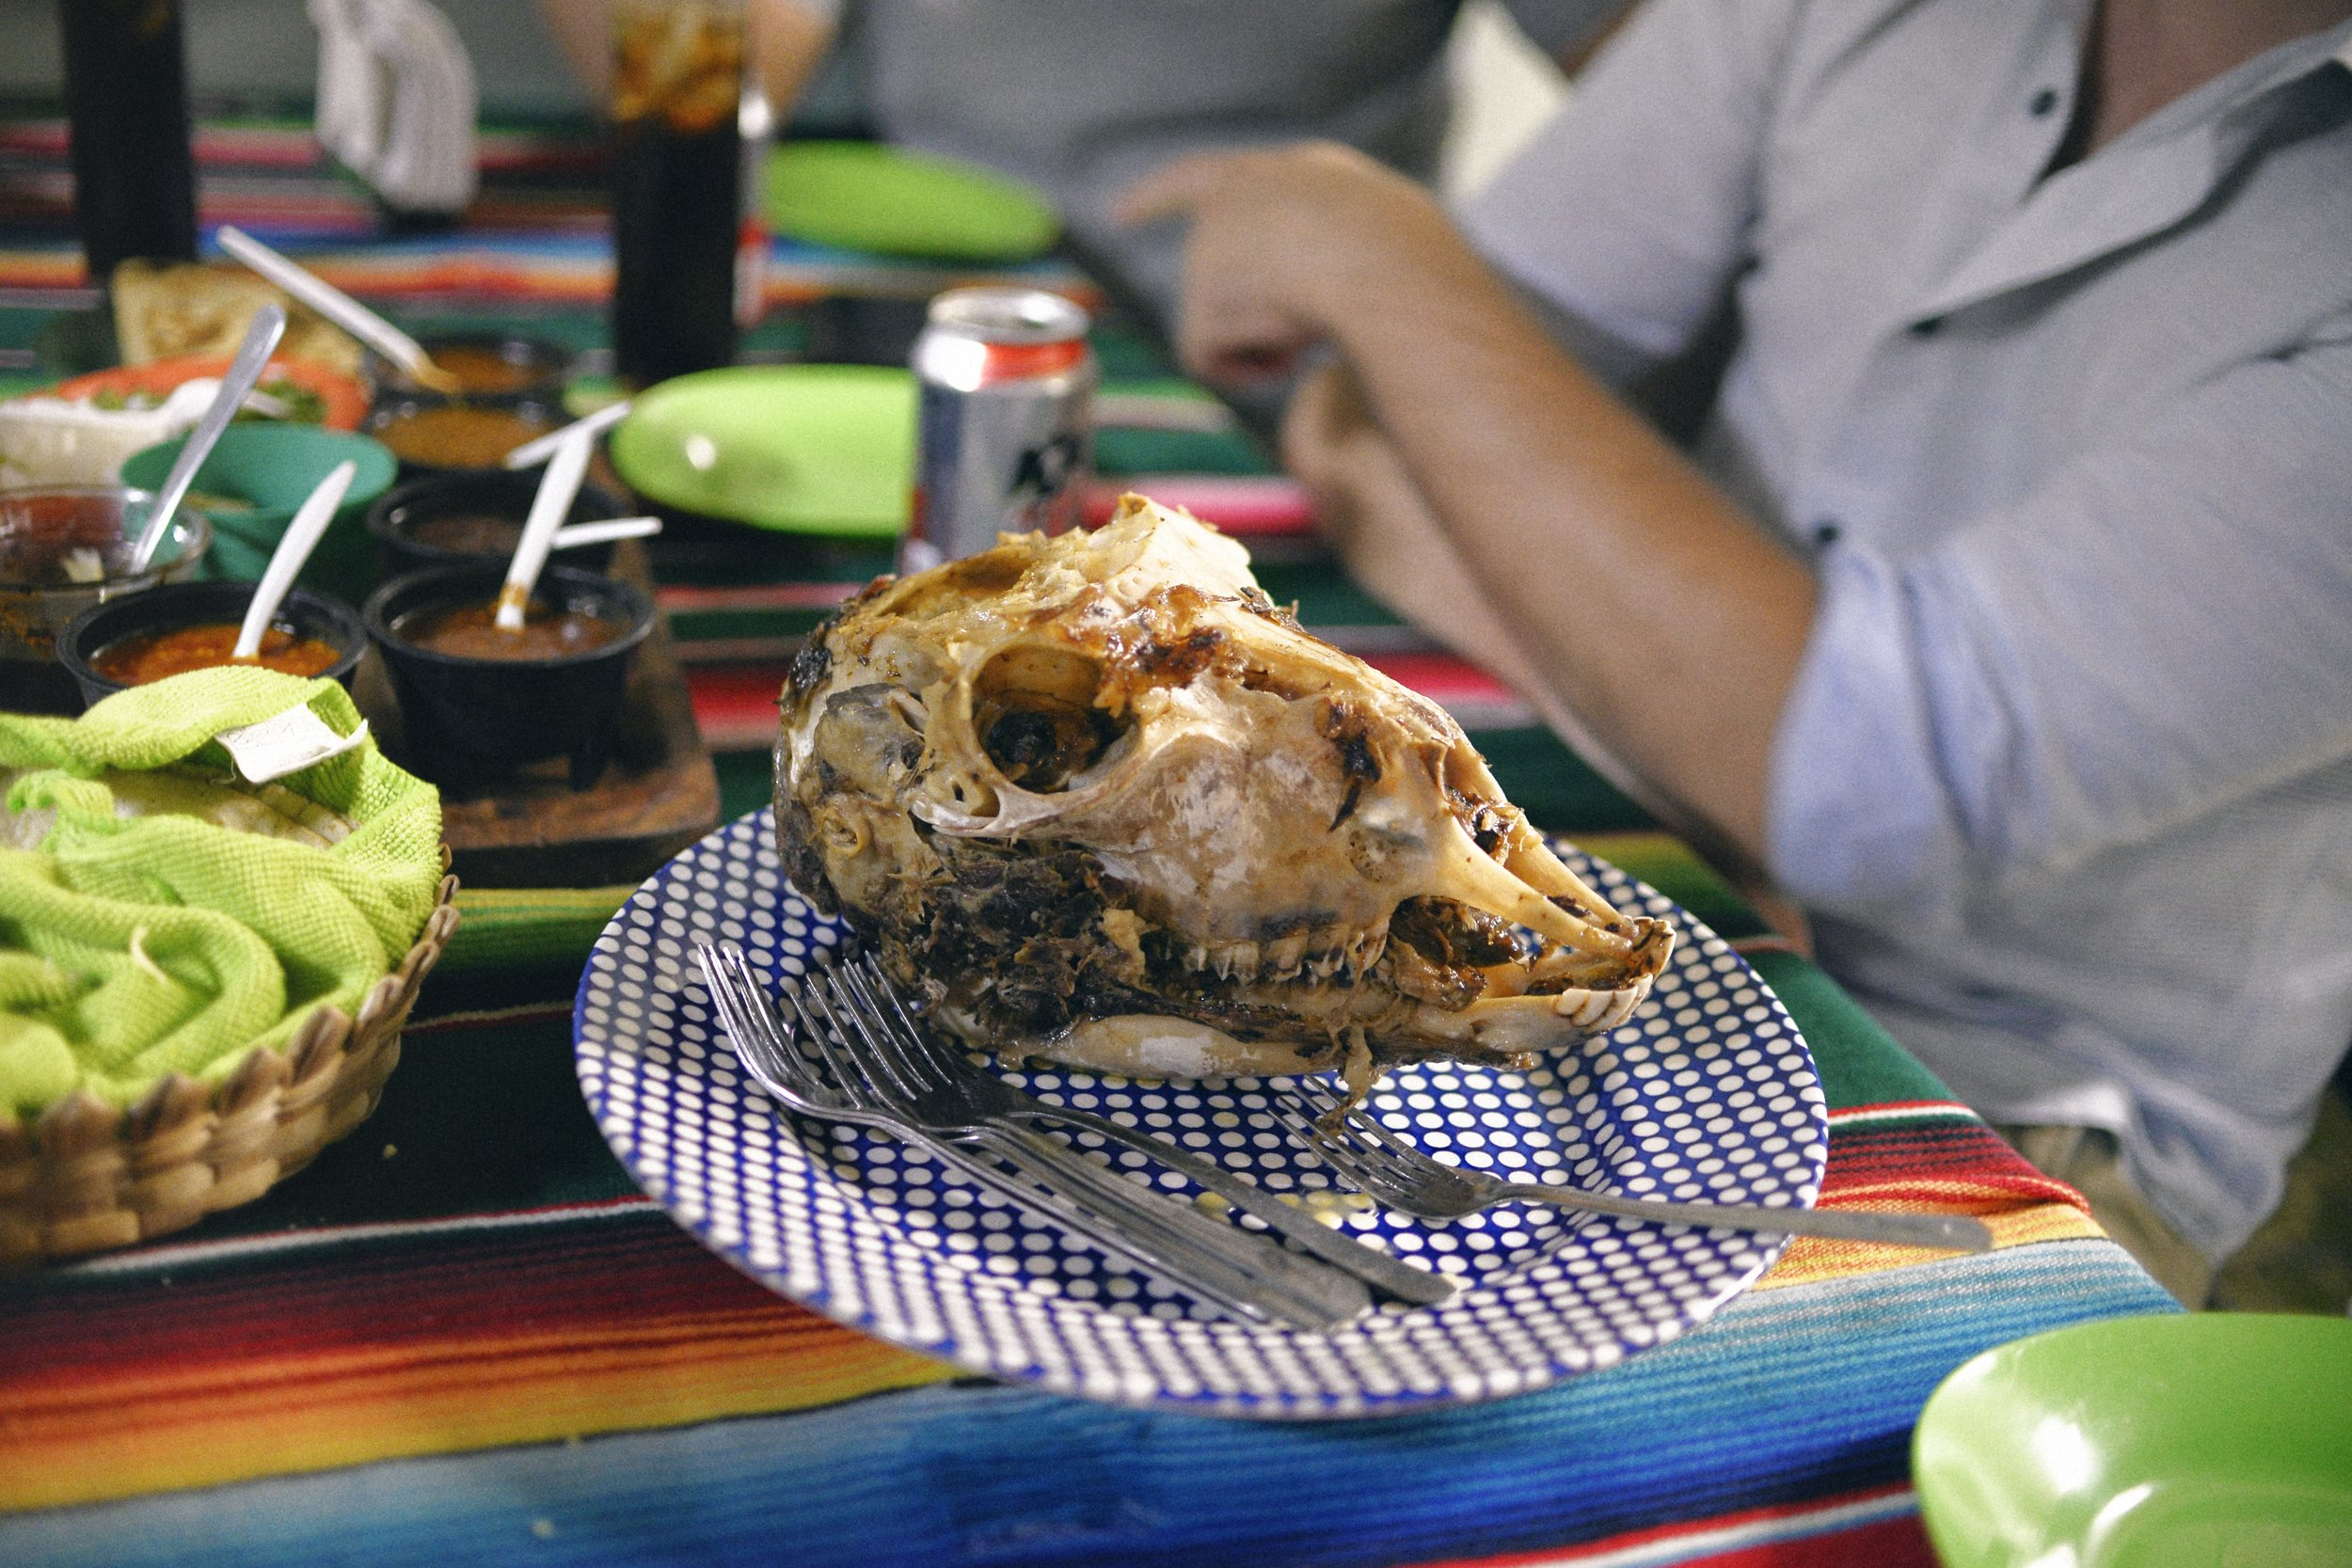 The piece de resistance: scooping from the lamb's head to get the taco meat